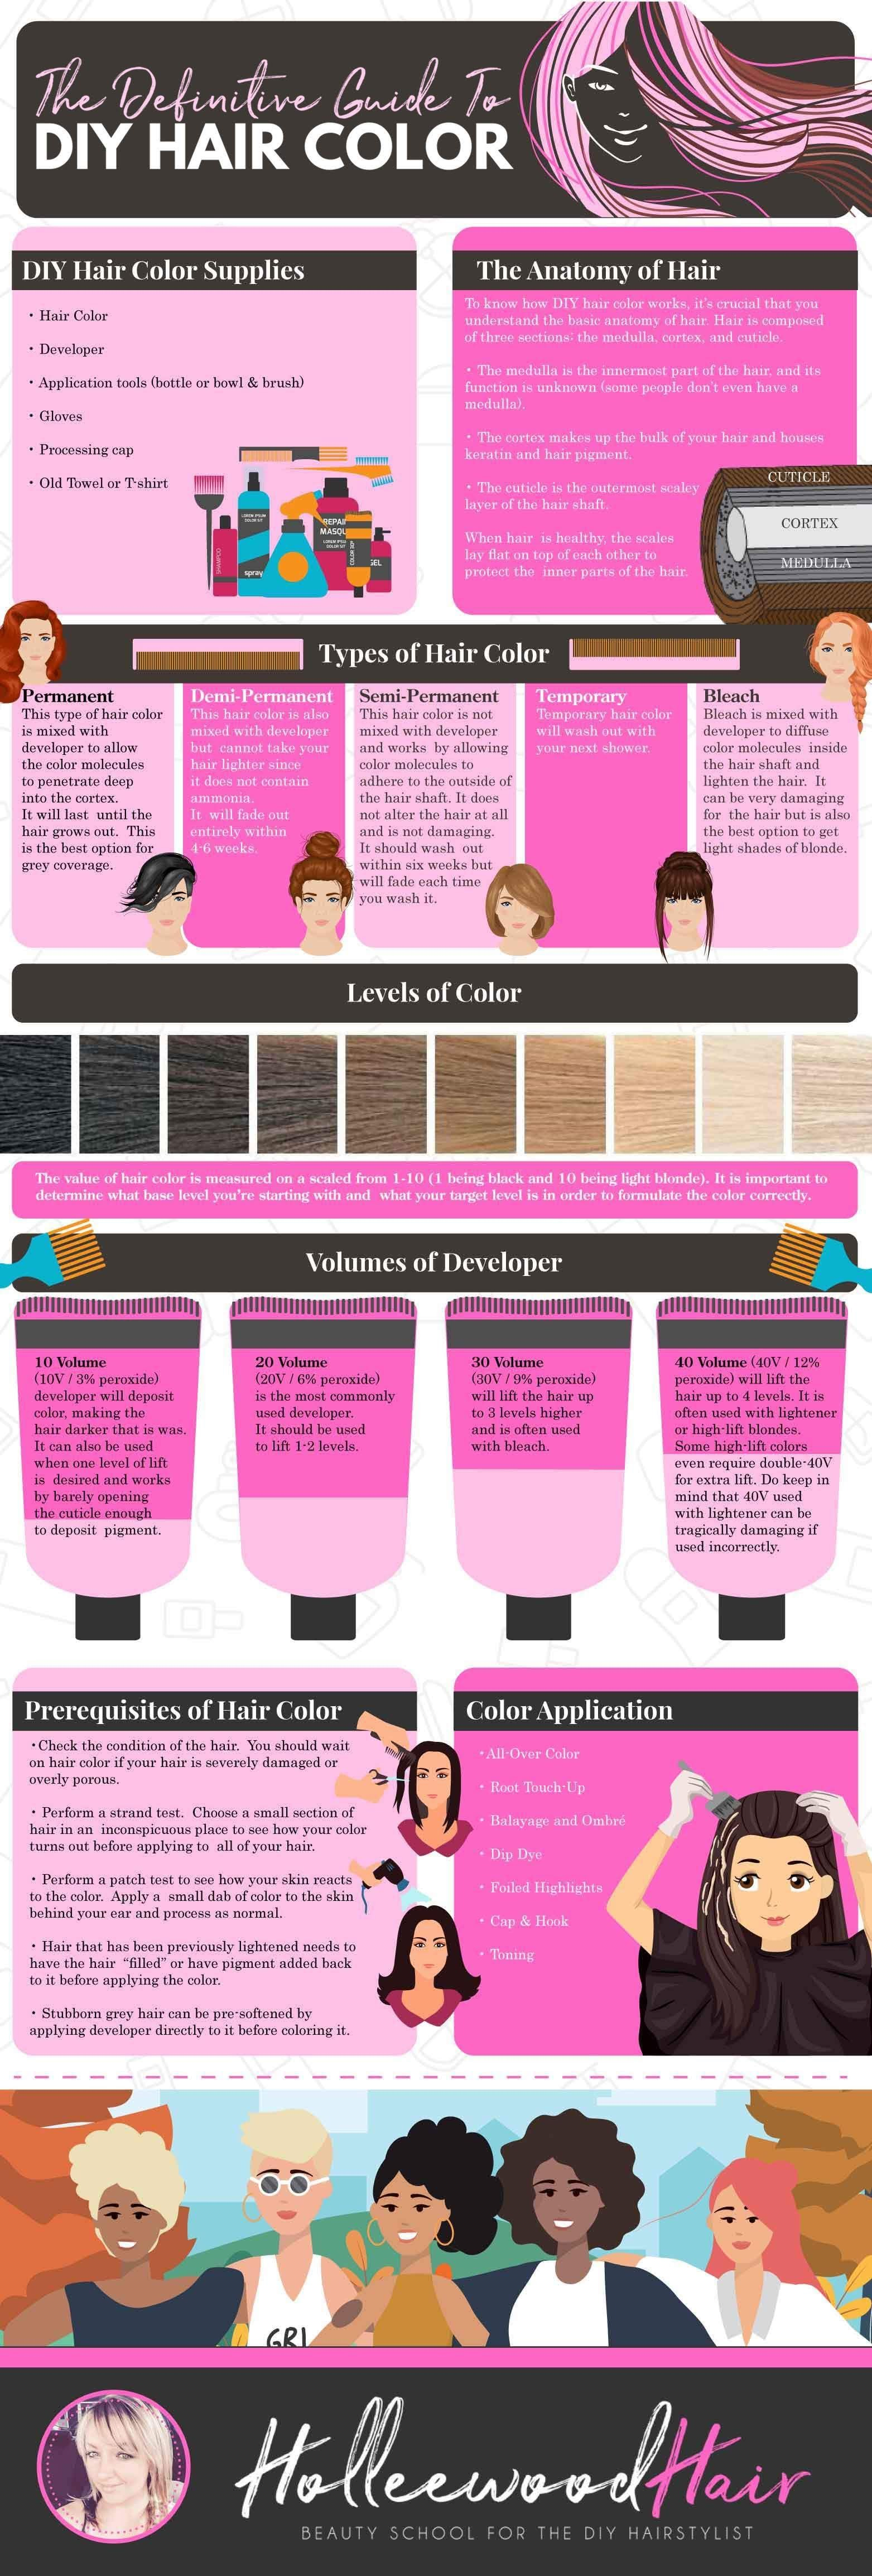 DIY Hair Color #infographic